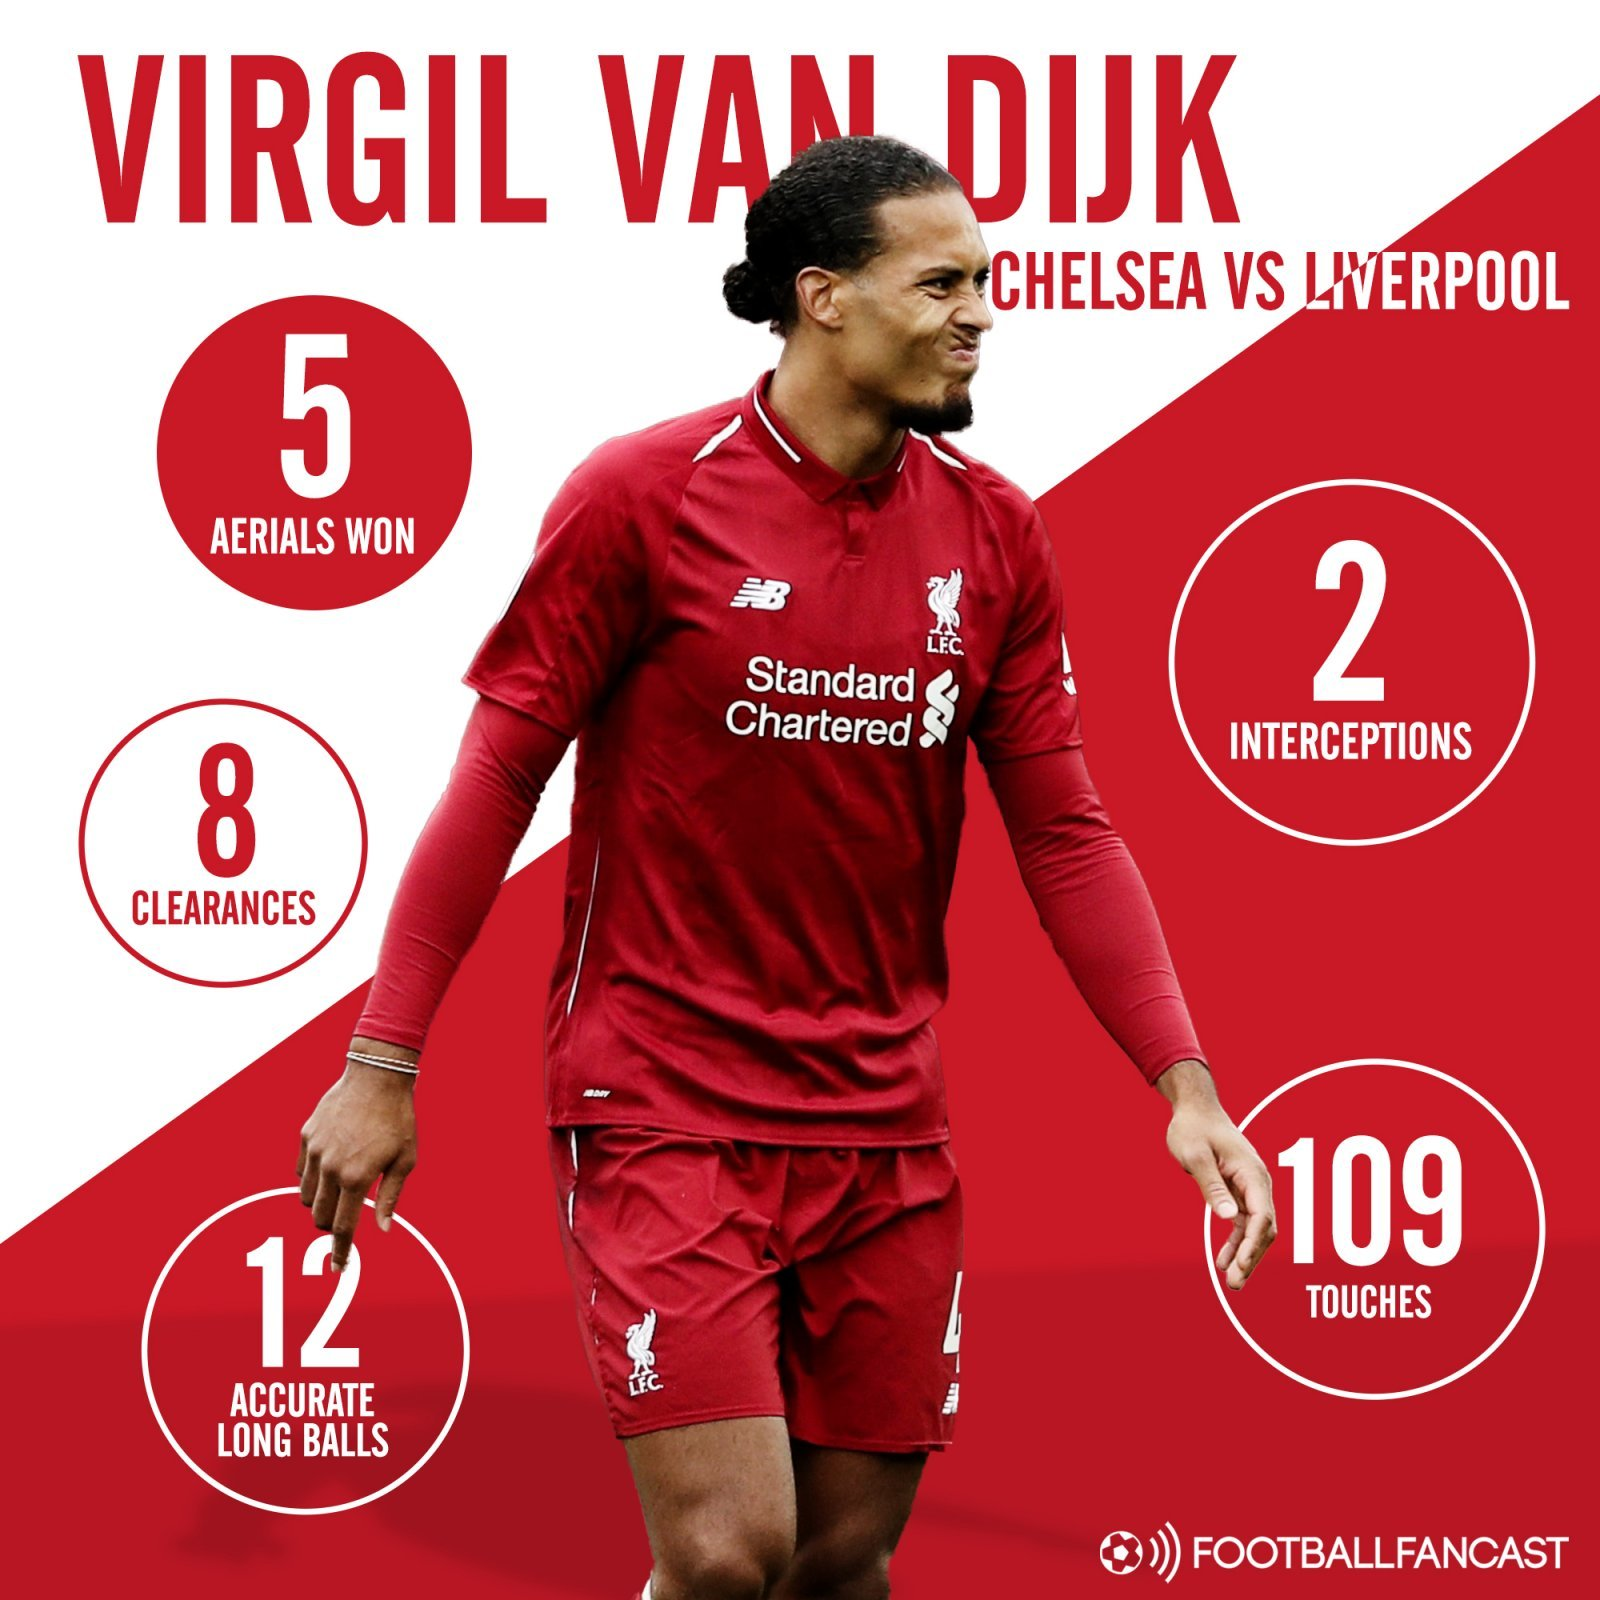 Virgil van Dijk's stats from Liverpool's draw with Chelsea